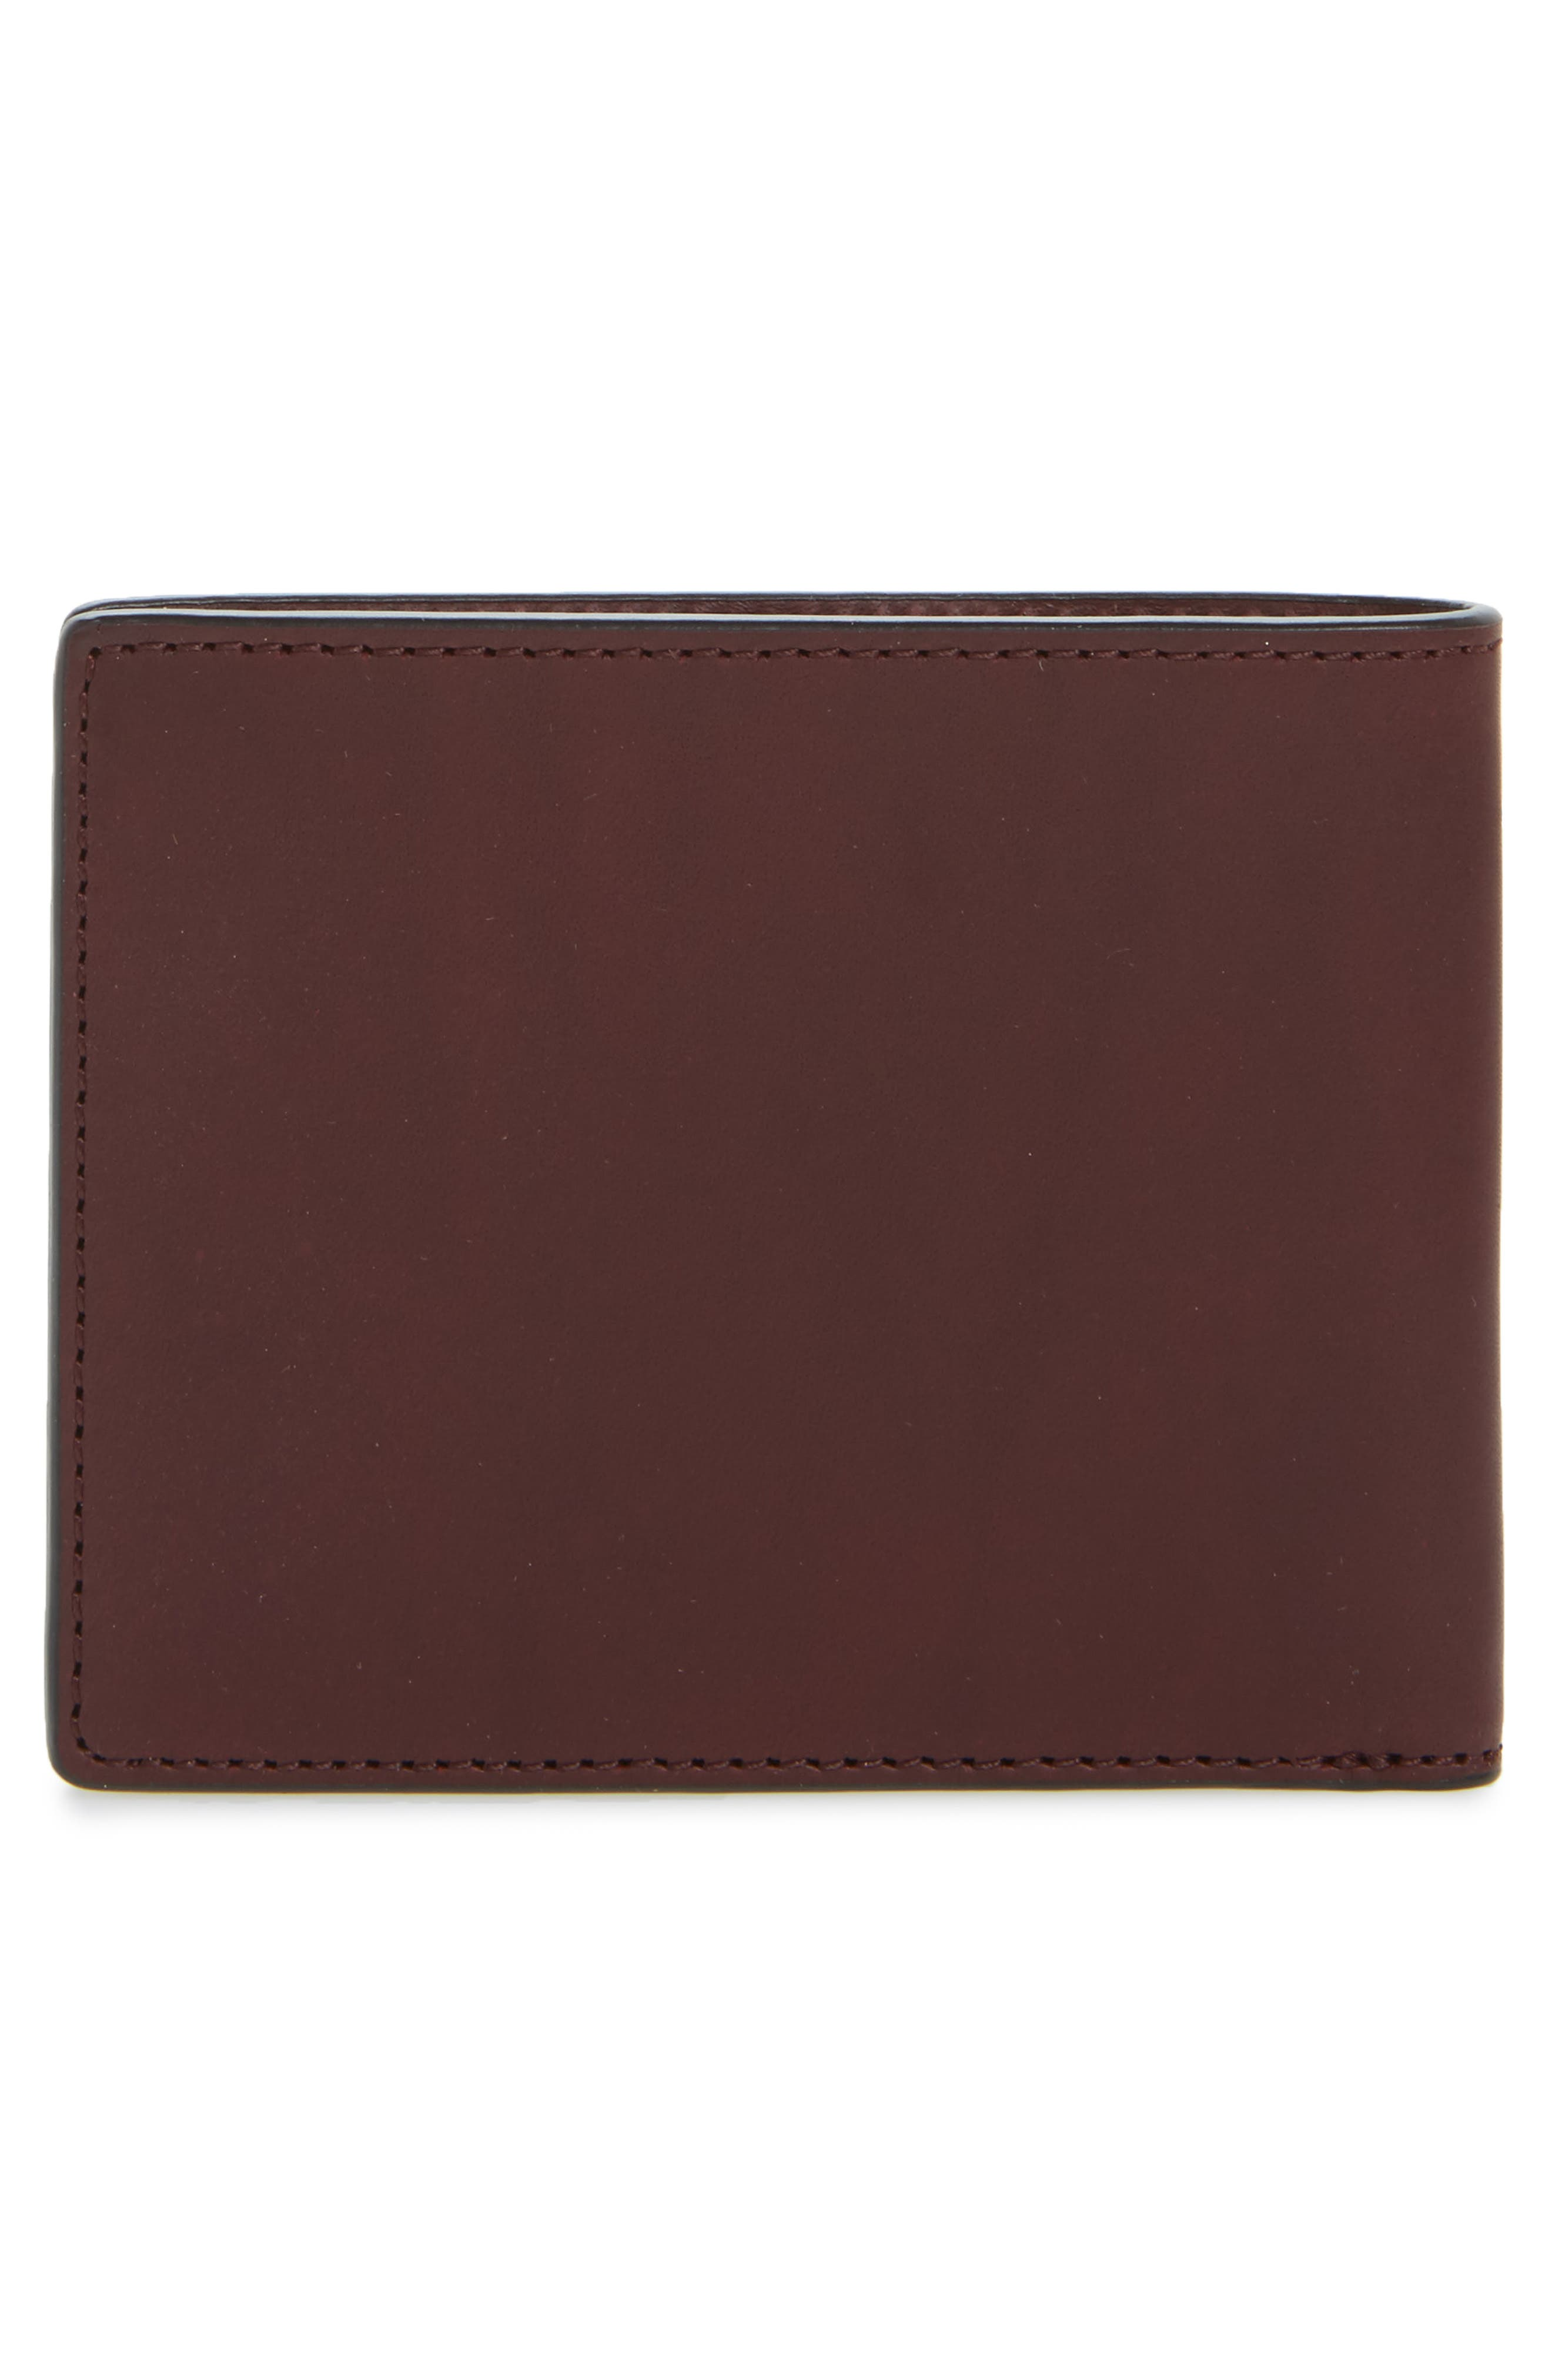 Hampshire Bifold Leather Wallet,                             Alternate thumbnail 3, color,                             998